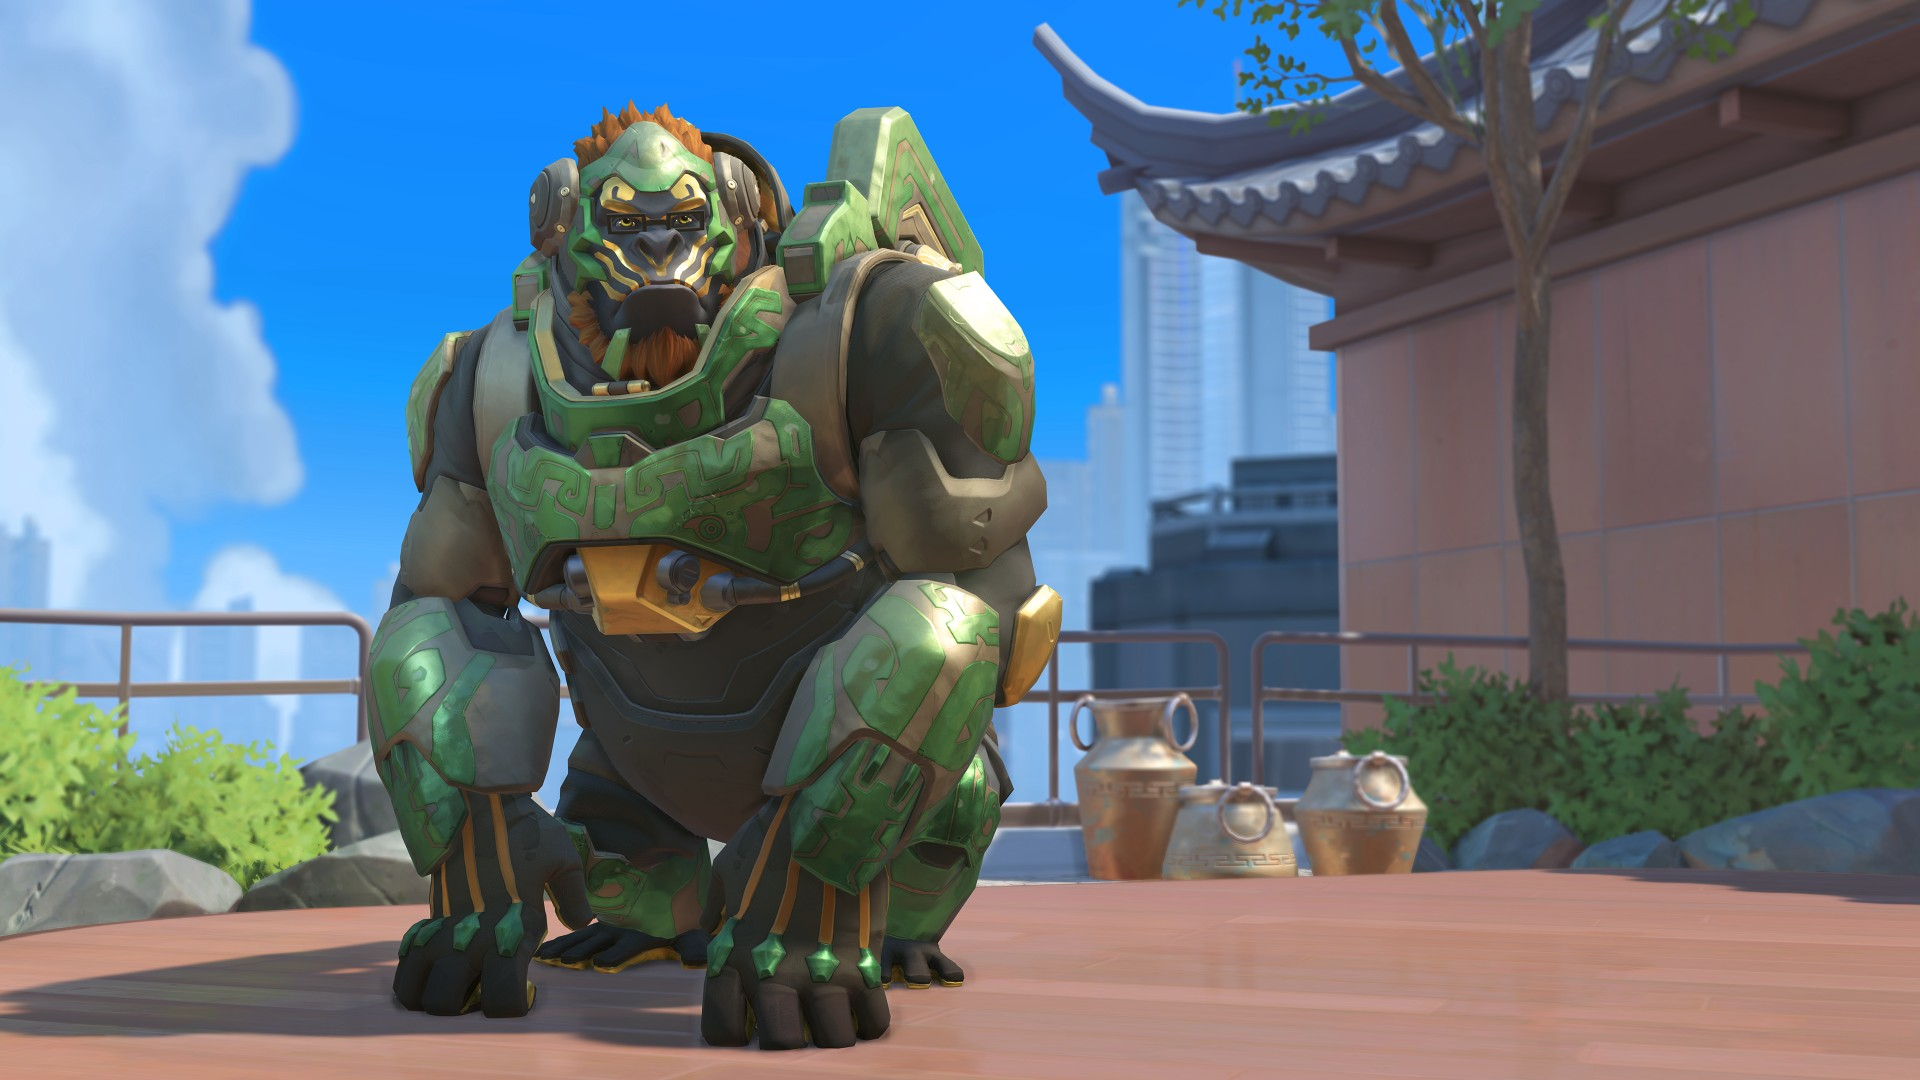 Tanks may go by a very different name in Overwatch 2